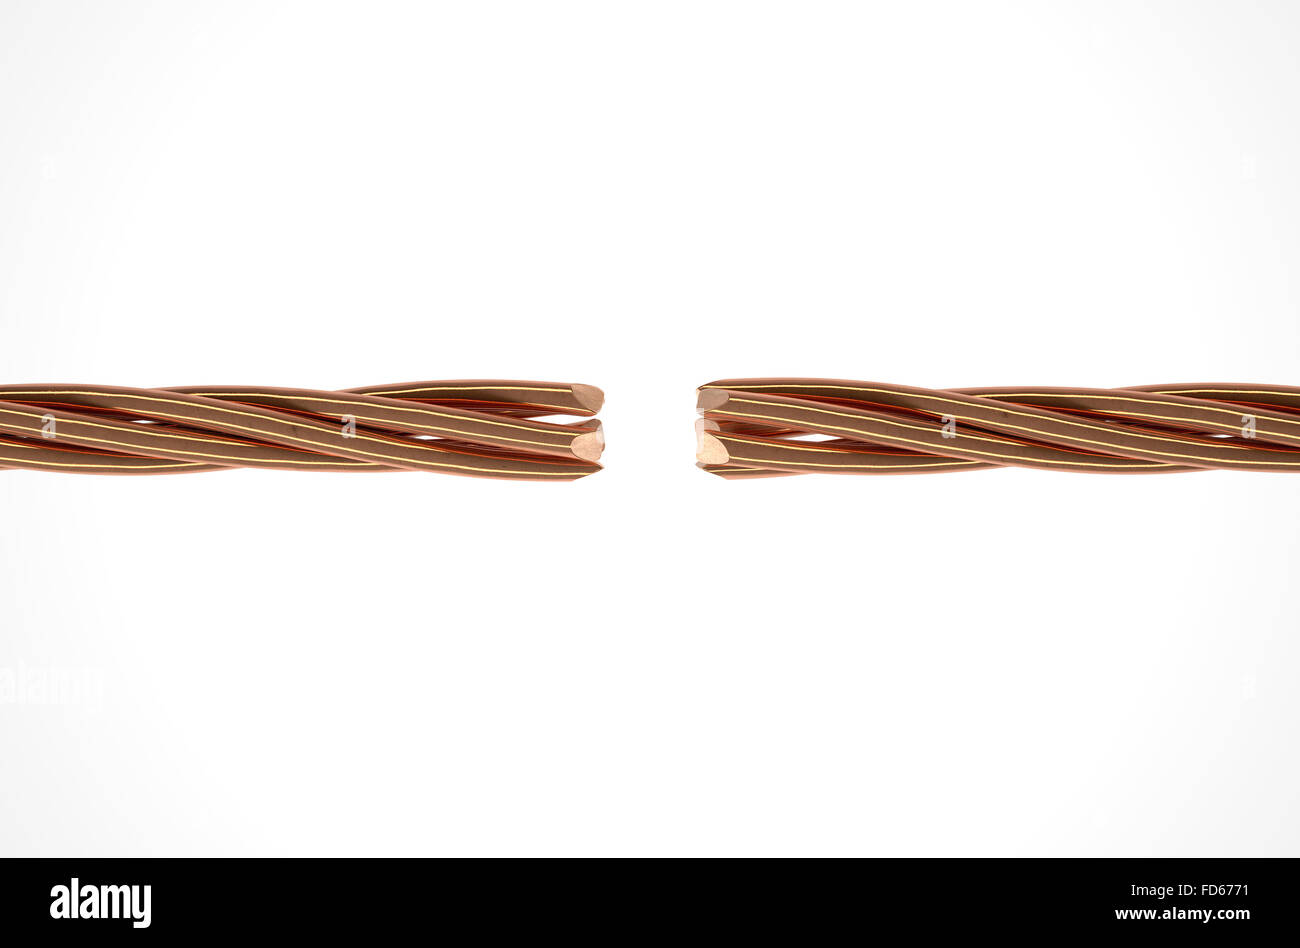 Two cables made up of twisted strands of copper wire that are ...